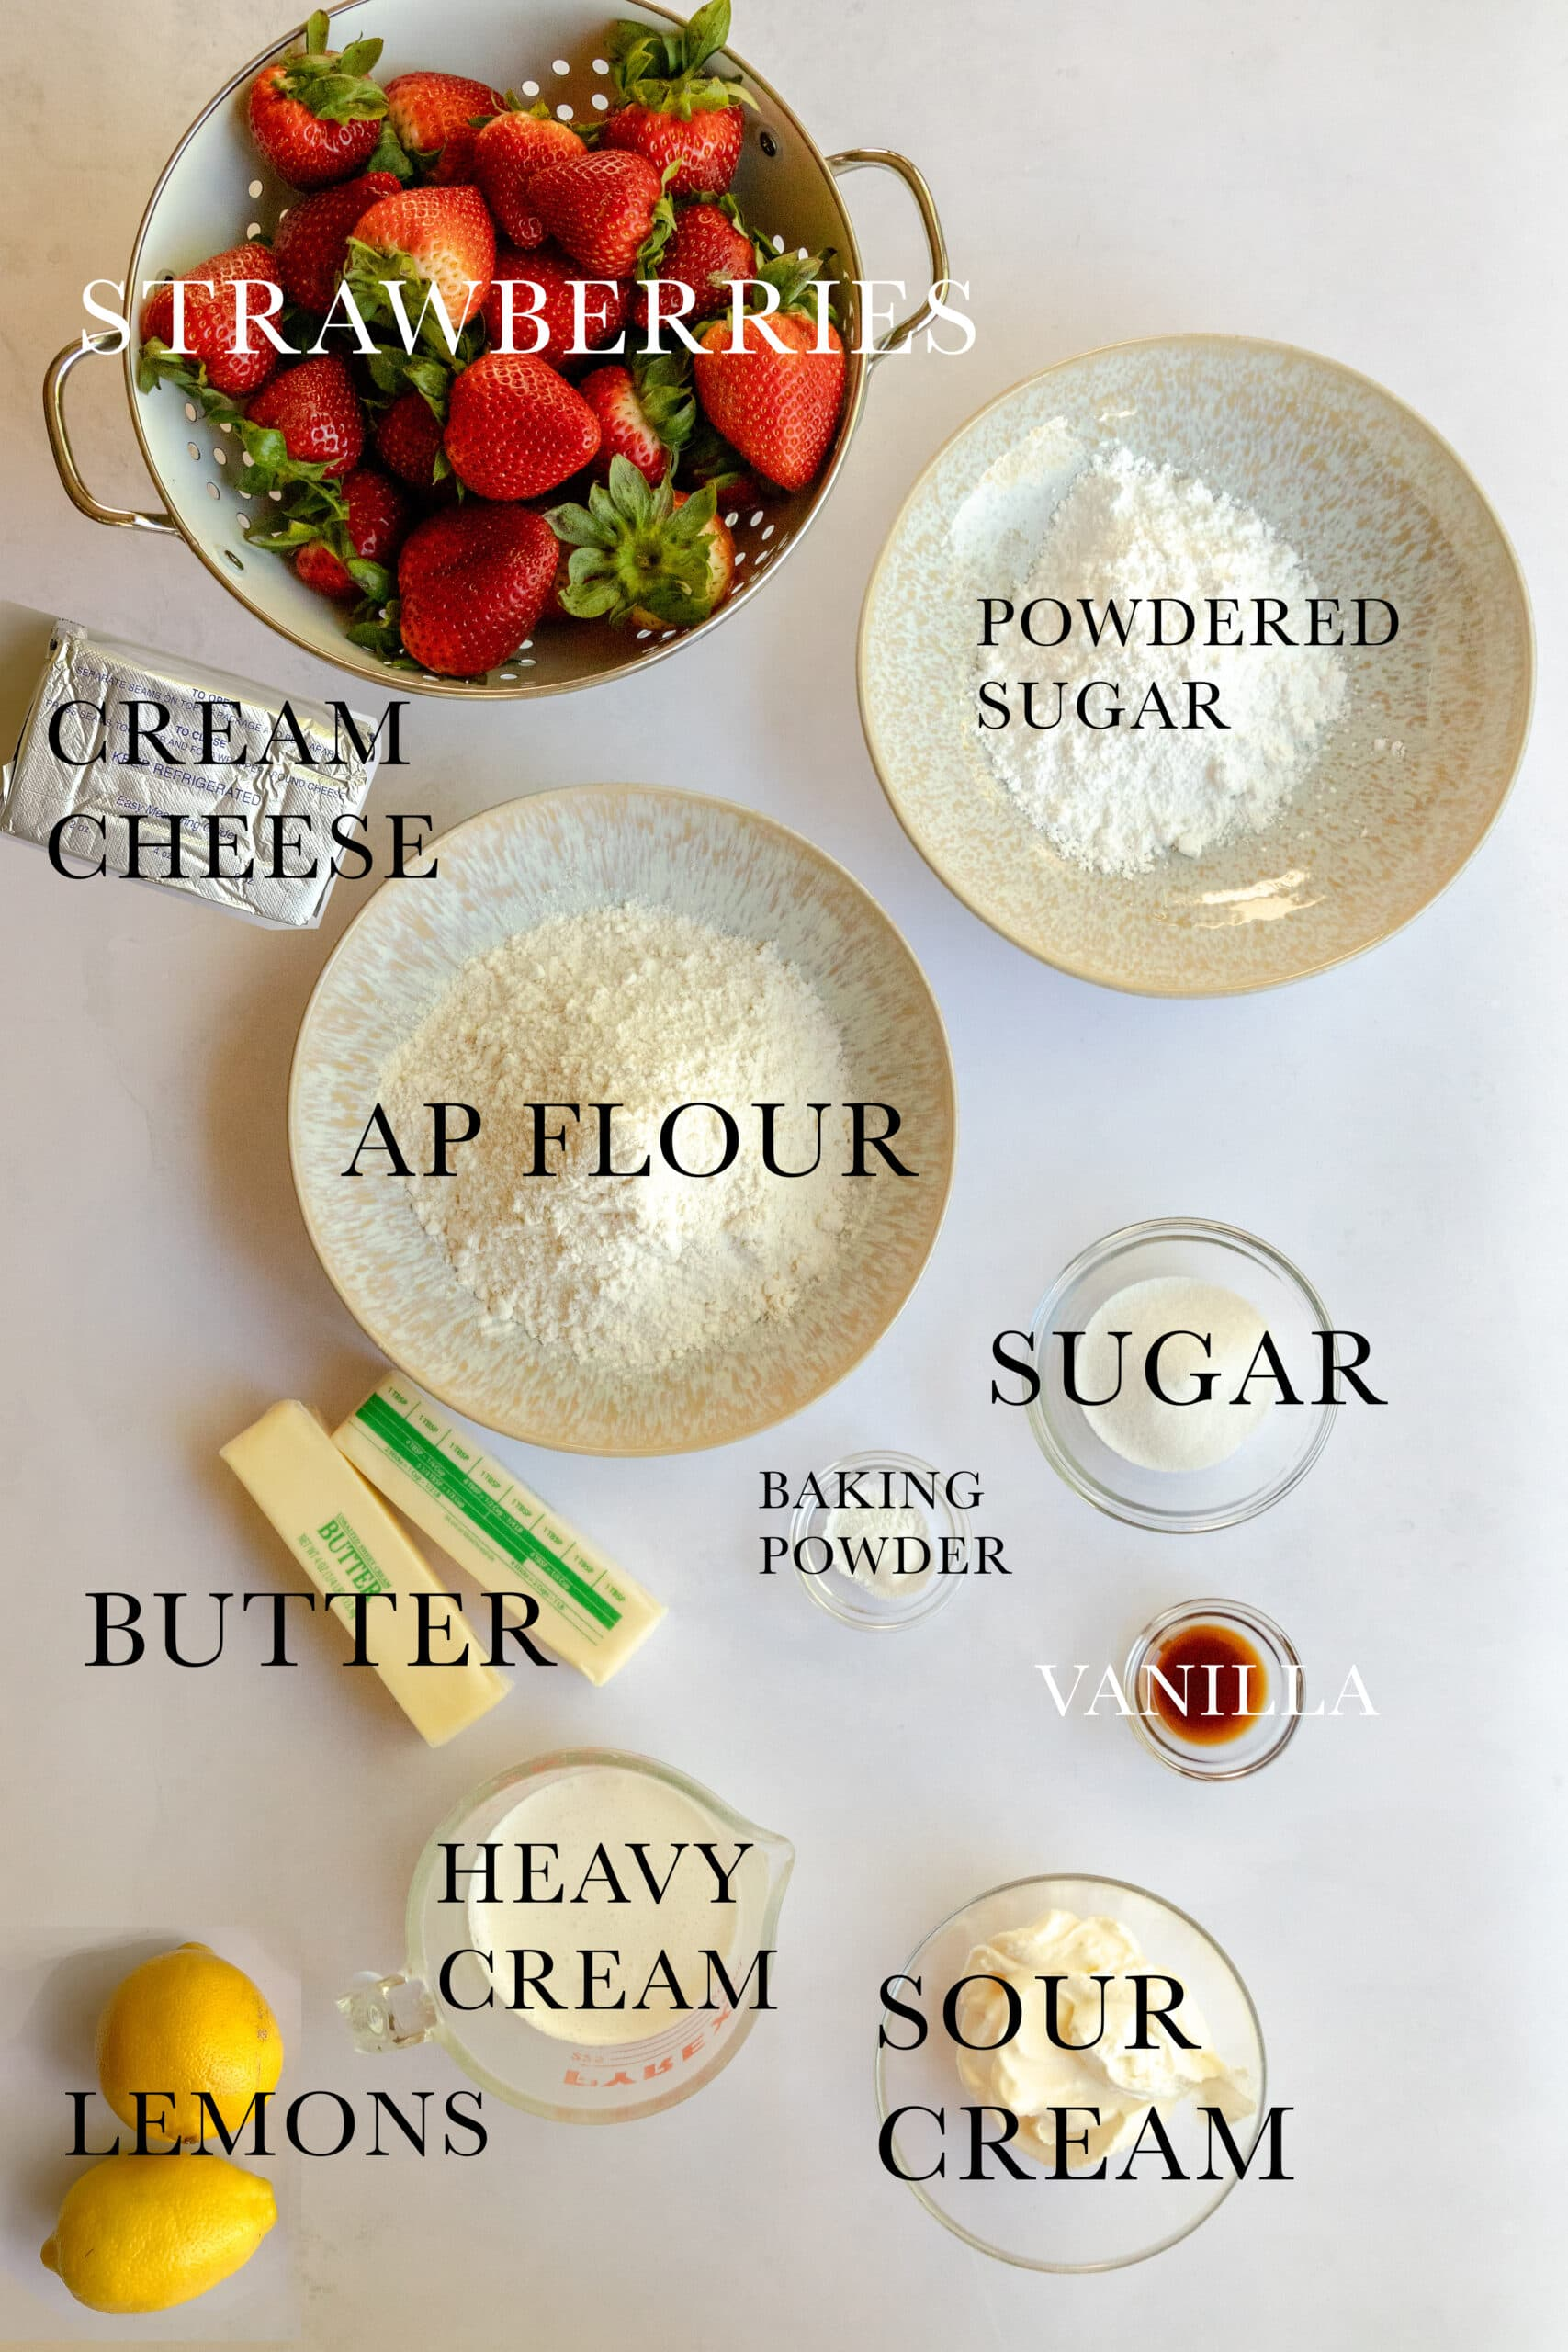 Image of ingredients needed for the Strawberries and Cream Blättertorte.